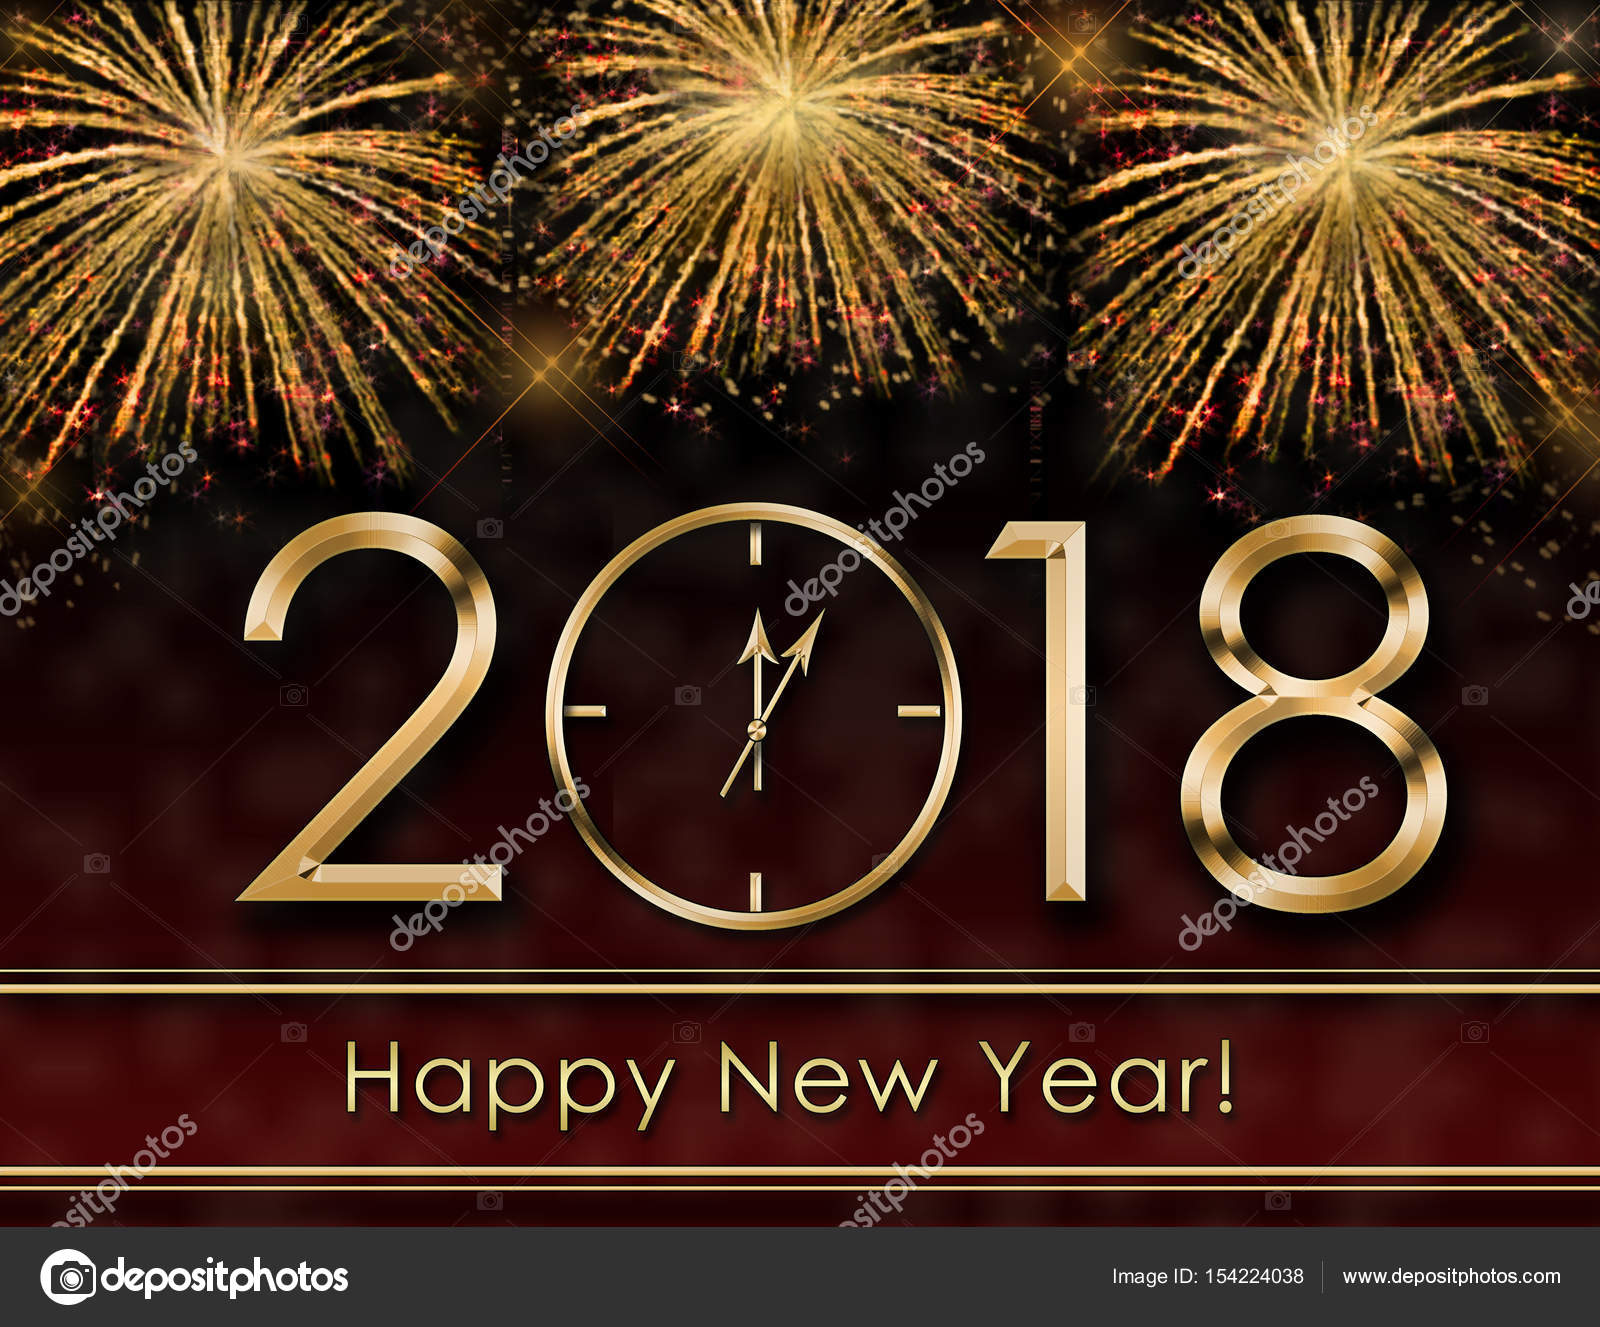 2018 happy new year background with fireworks and gold clock photo by syhinstas